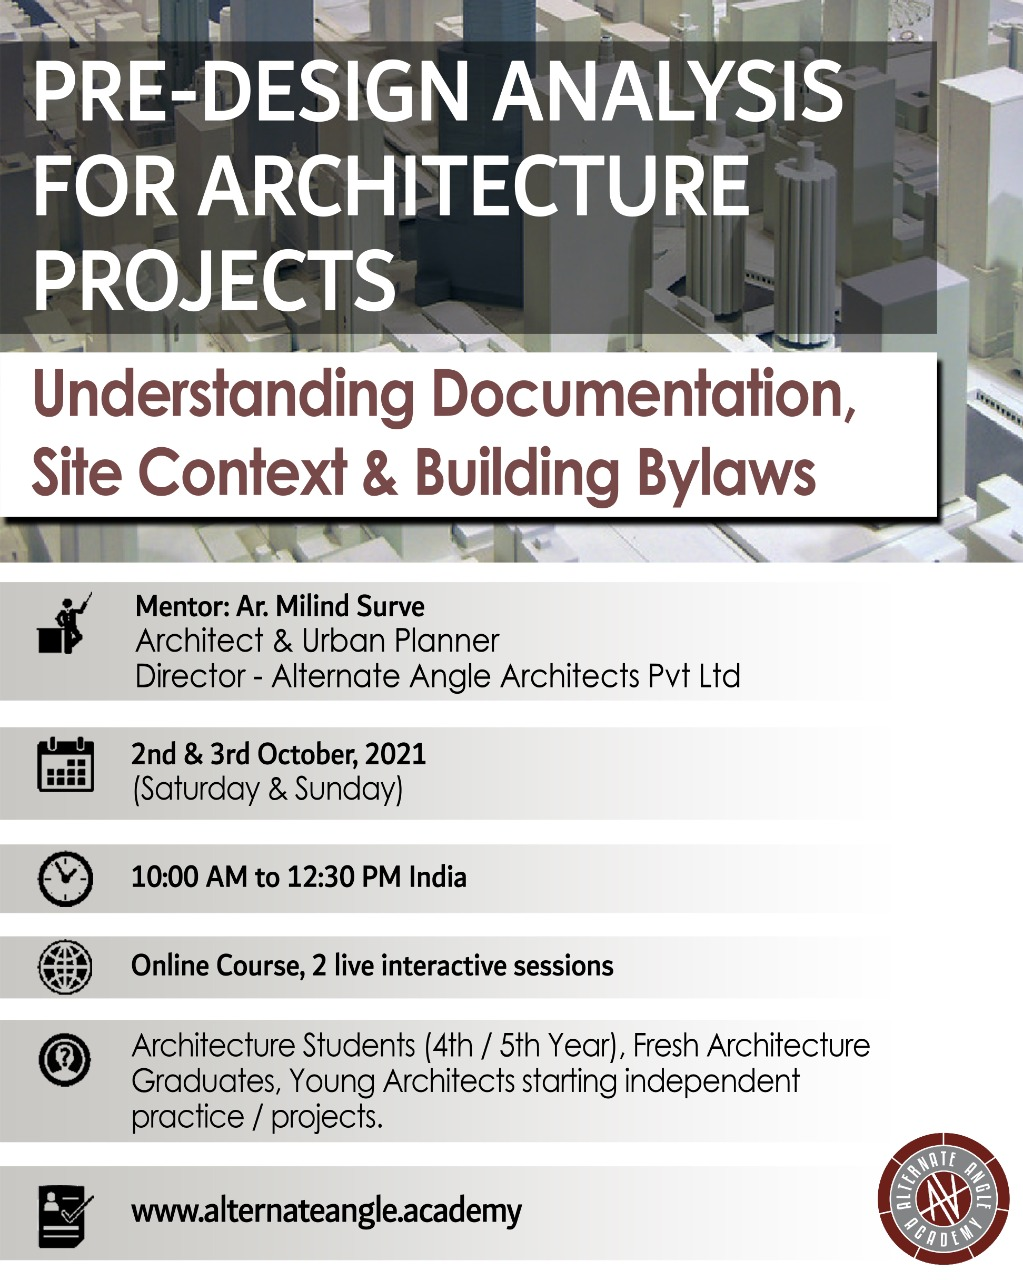 Pre-Design Analysis for Architecture Projects